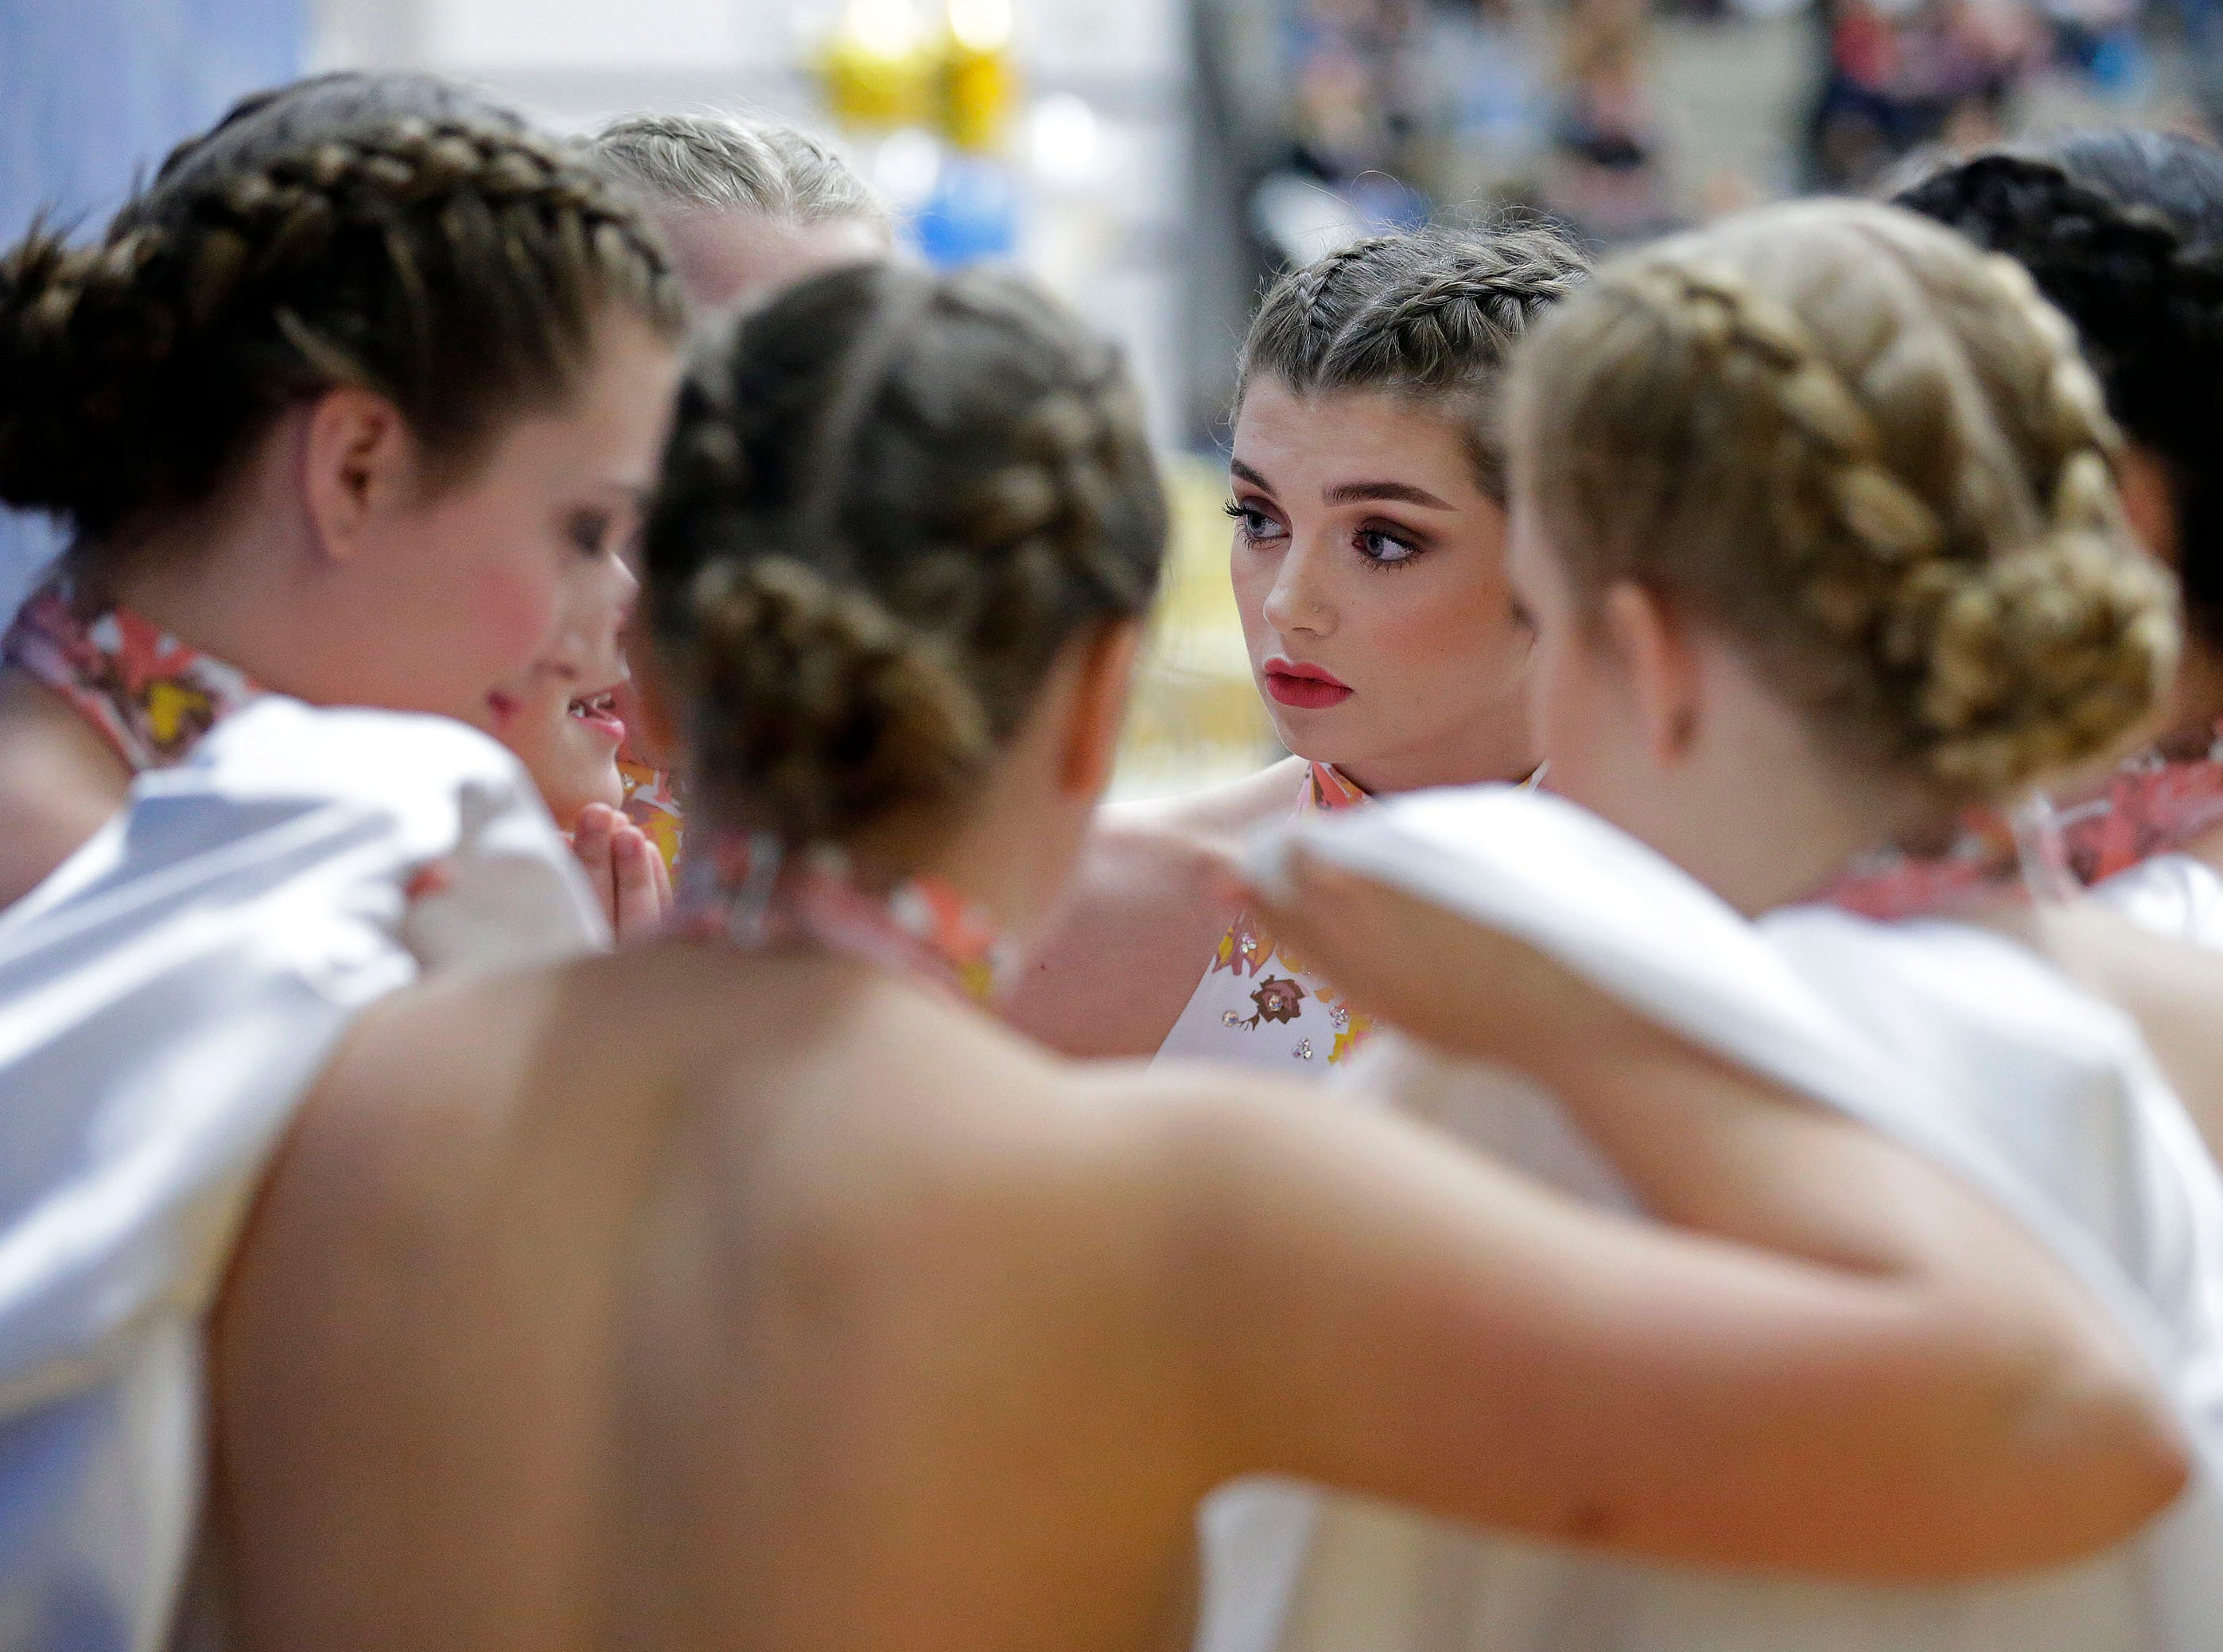 The Oconto Falls team gets ready to compete in the Varsity Jazz Division as the Lightning Bolt Explosion Cheer and Dance competition takes place Saturday, January 5, 2019, at Appleton North High School in Appleton, Wis.